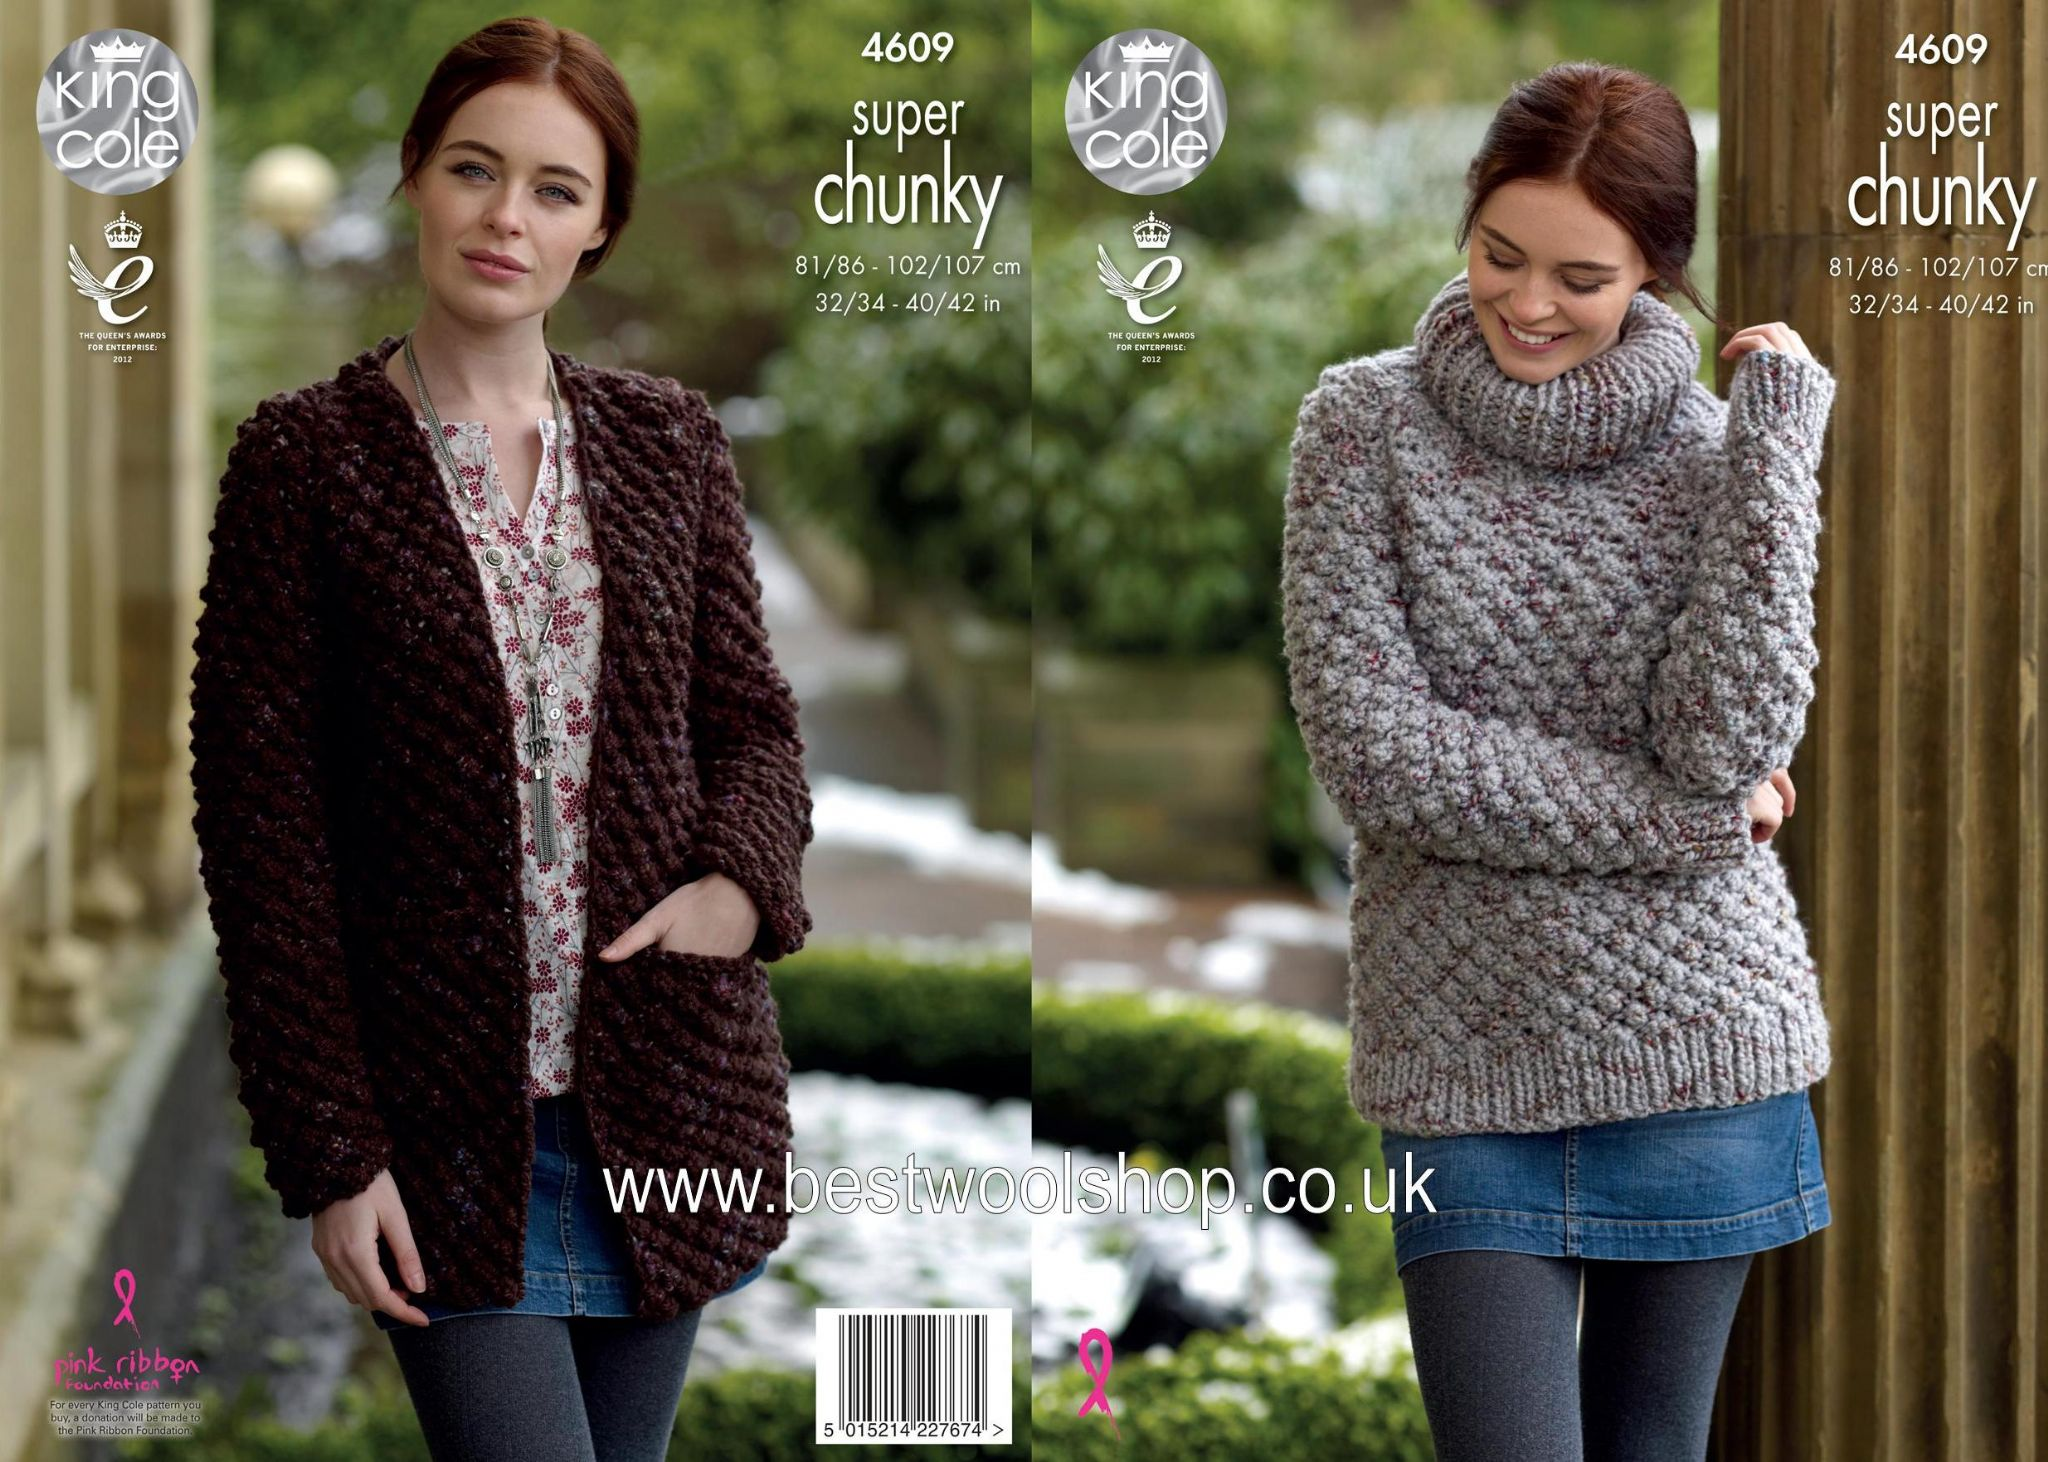 850bb0940 4609 - KING COLE BIG VALUE SUPER CHUNKY TWIST SWEATER   LONG CARDIGAN  JACKET KNITTING PATTERN - TO FIT CHEST 32 TO 42